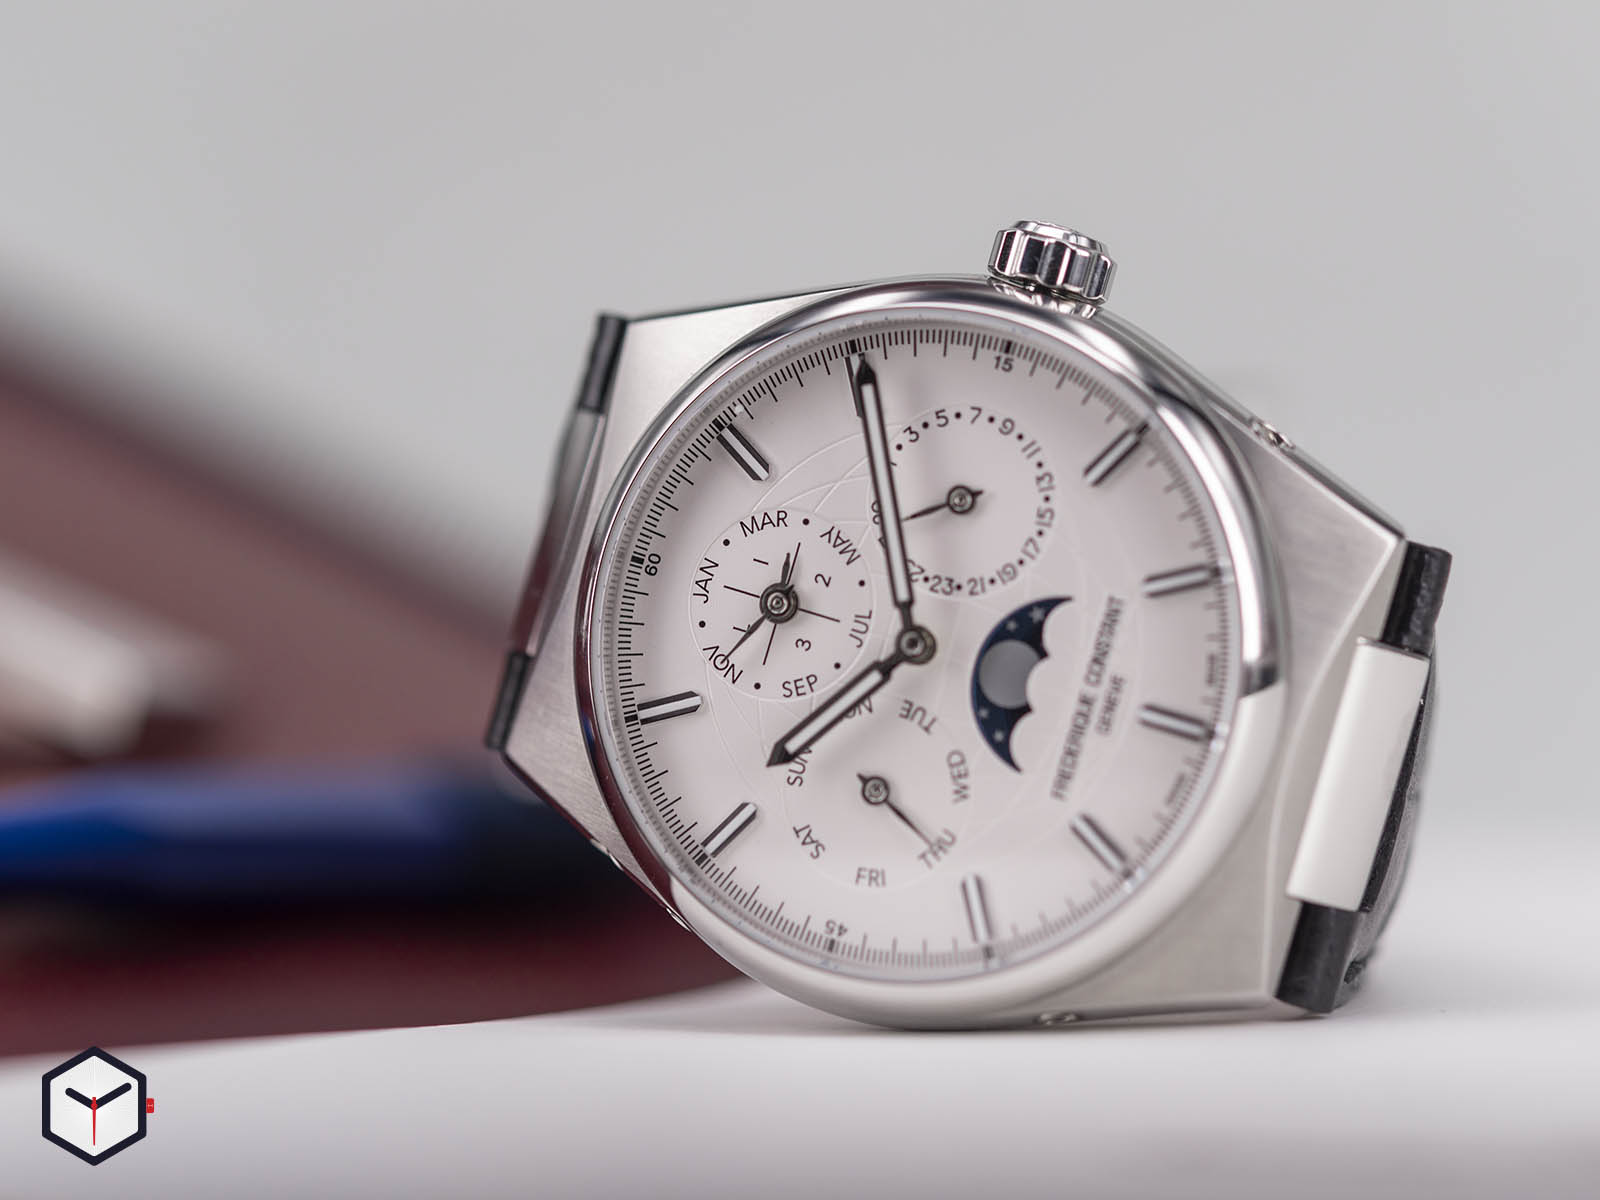 fc-775s4nh6-frederique-constant-highlife-perpetual-calendar-manufacture-2.jpg